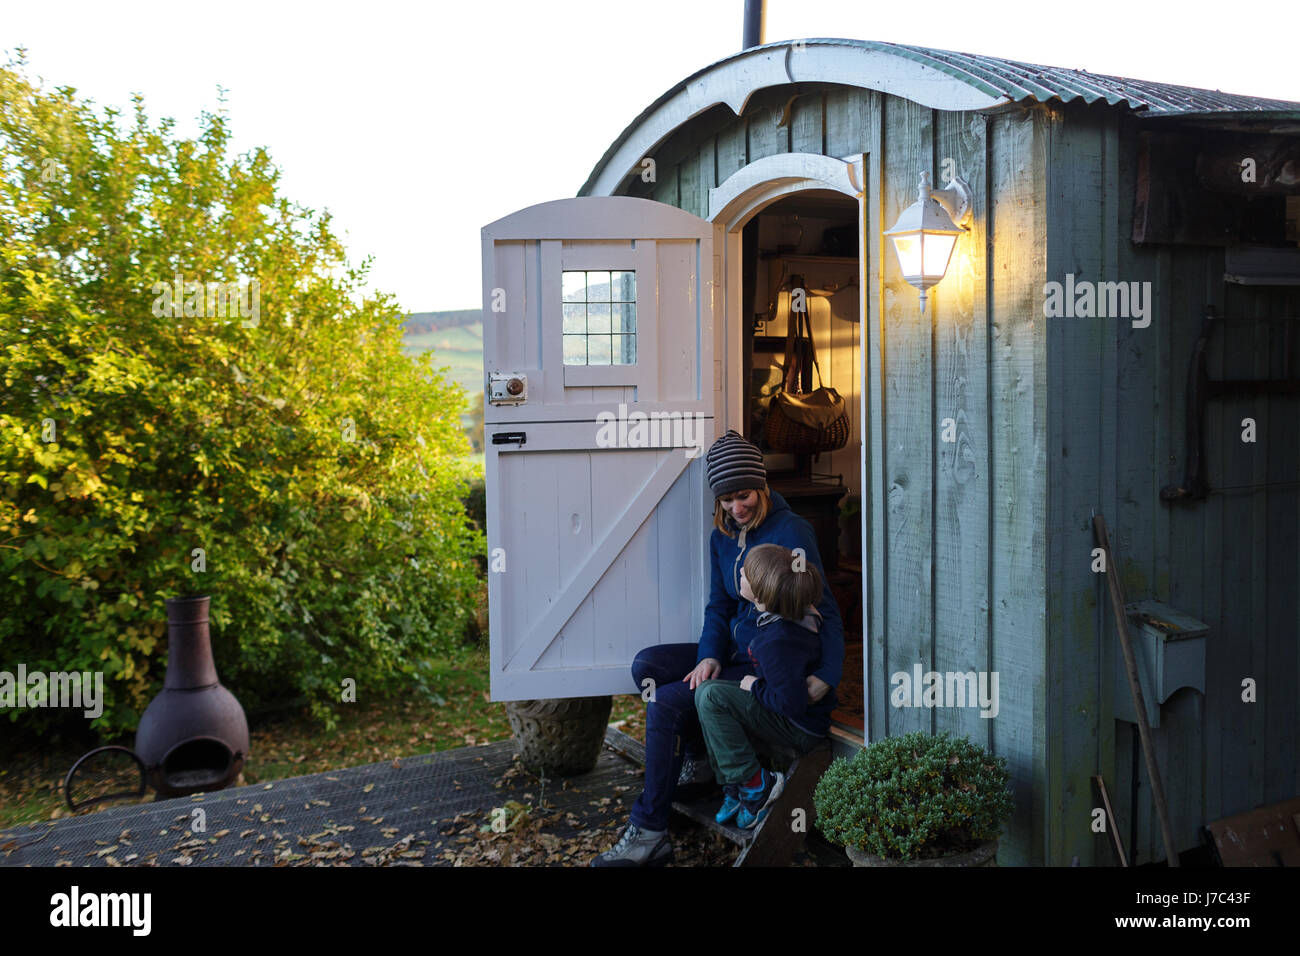 Mother and son at a glamping hut, Scottish borders, UK. - Stock Image